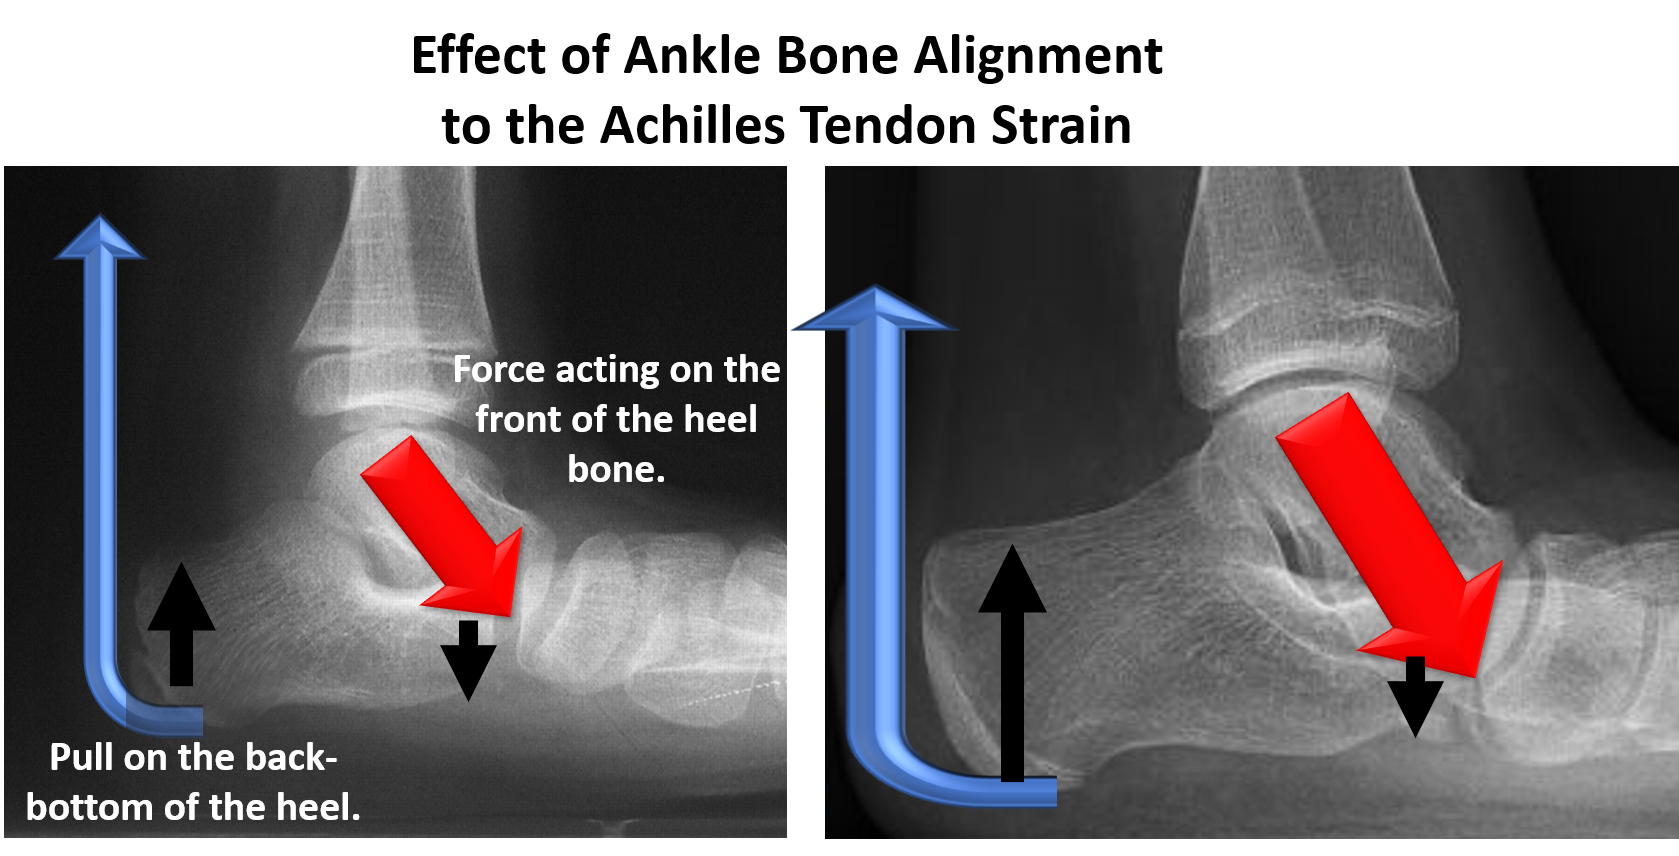 Force acting on the front of the heel bone